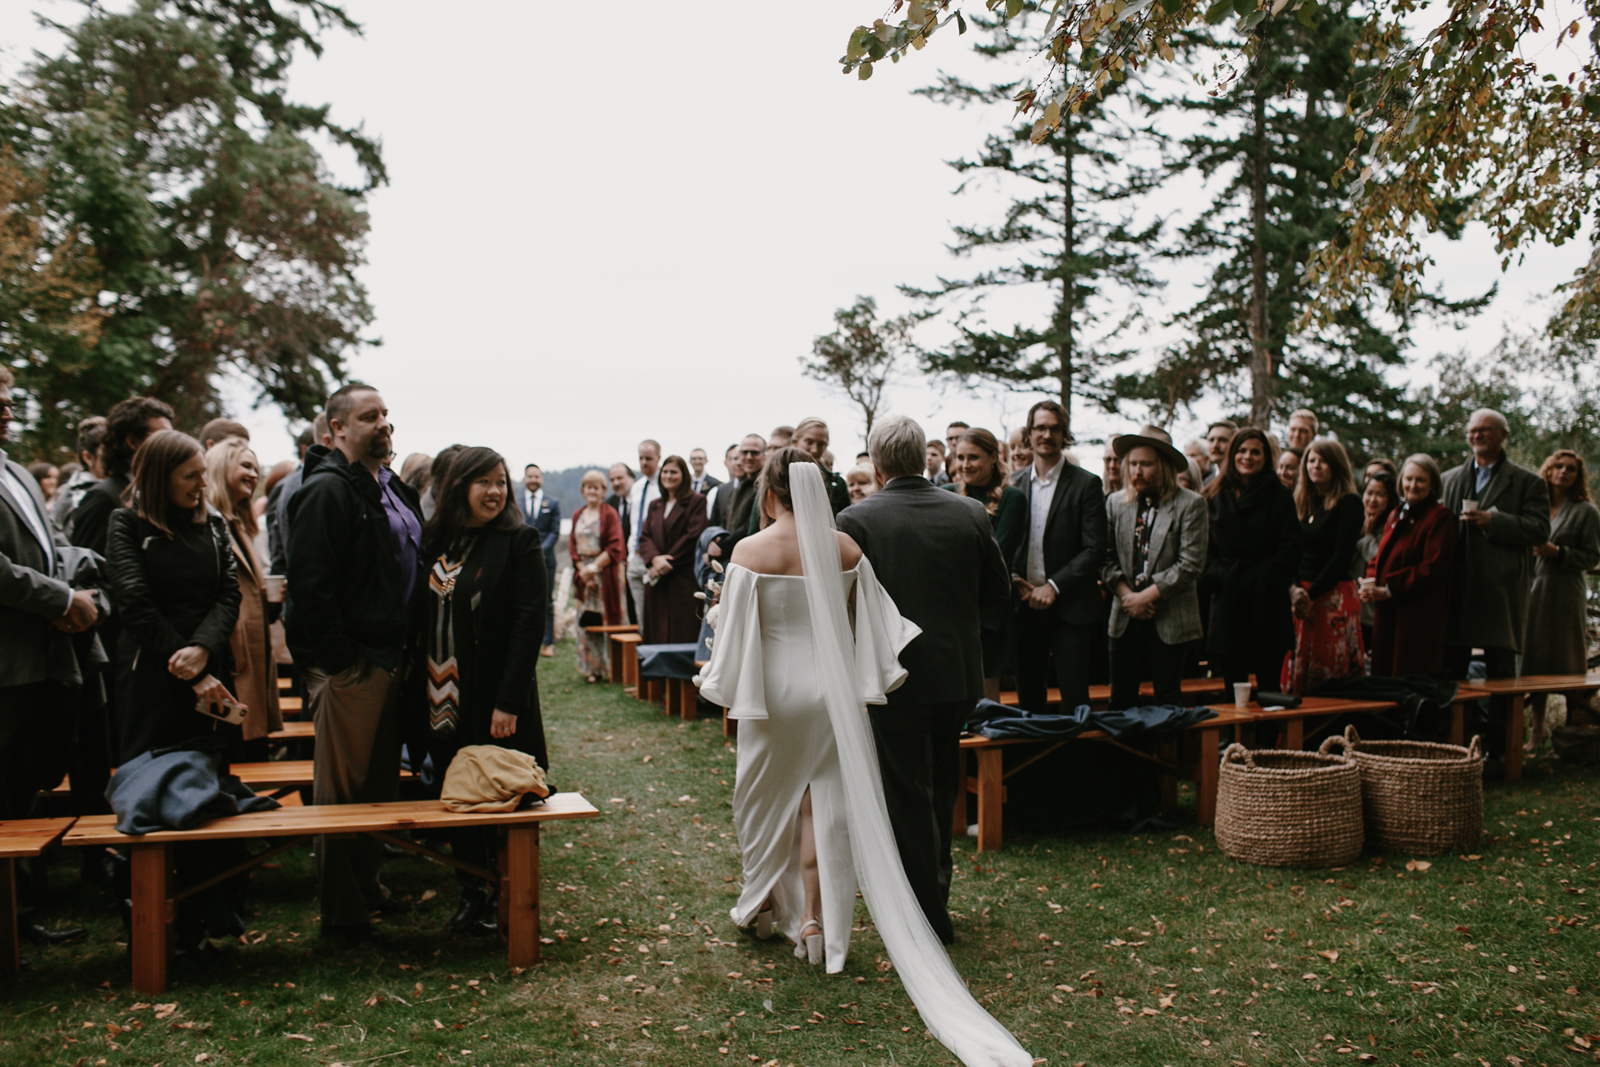 Kristen_Marie_Parker_Woodstock_Farm_Wedding047.JPG